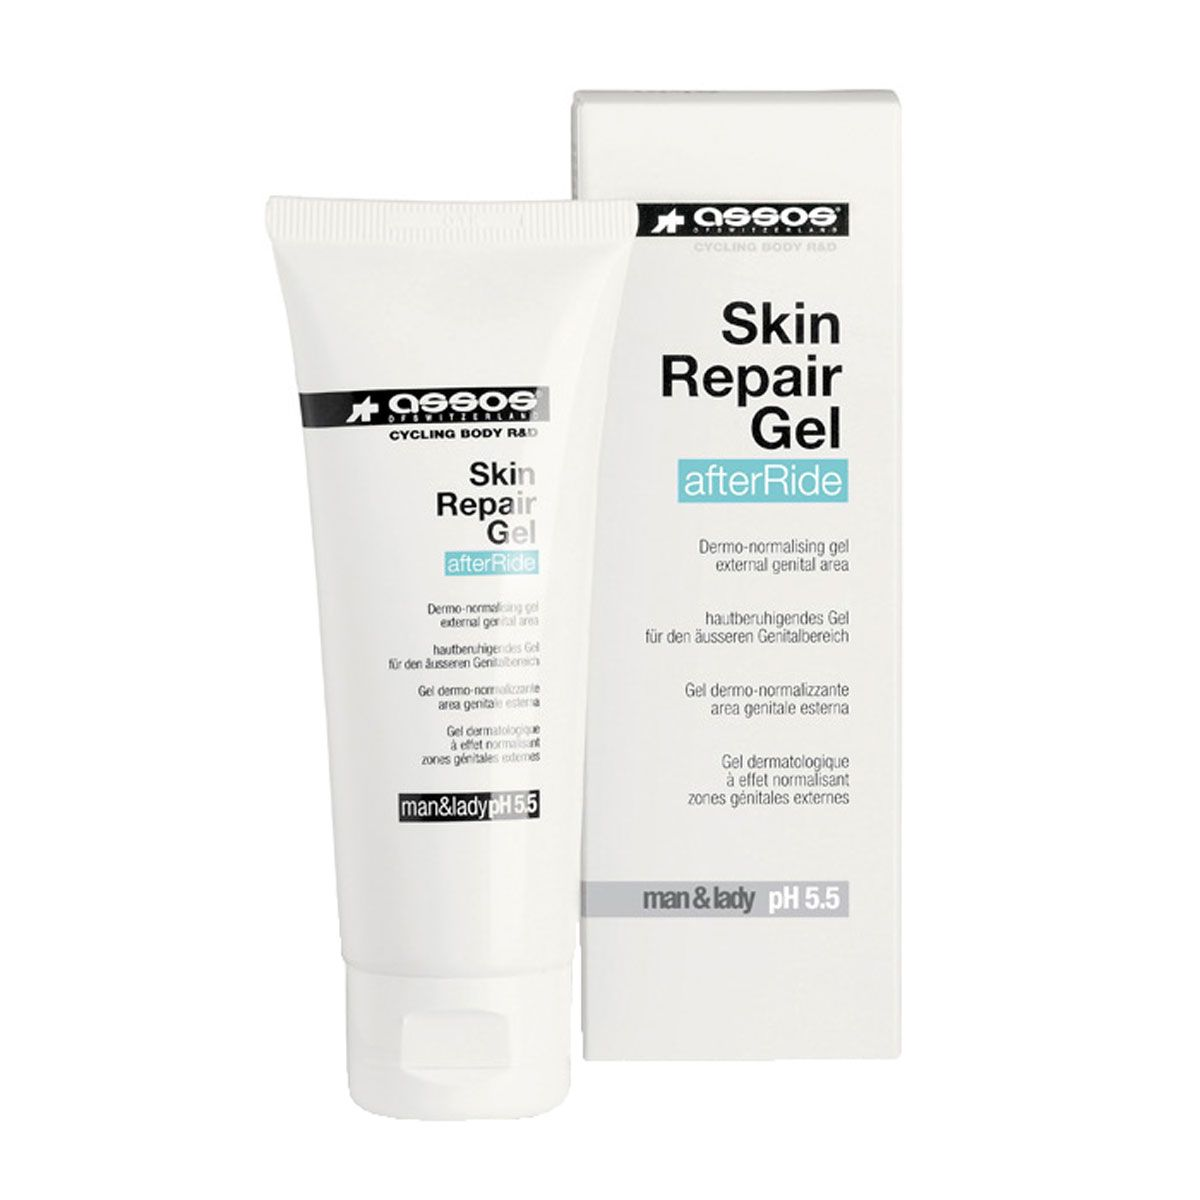 Assos skinRepair-Gel